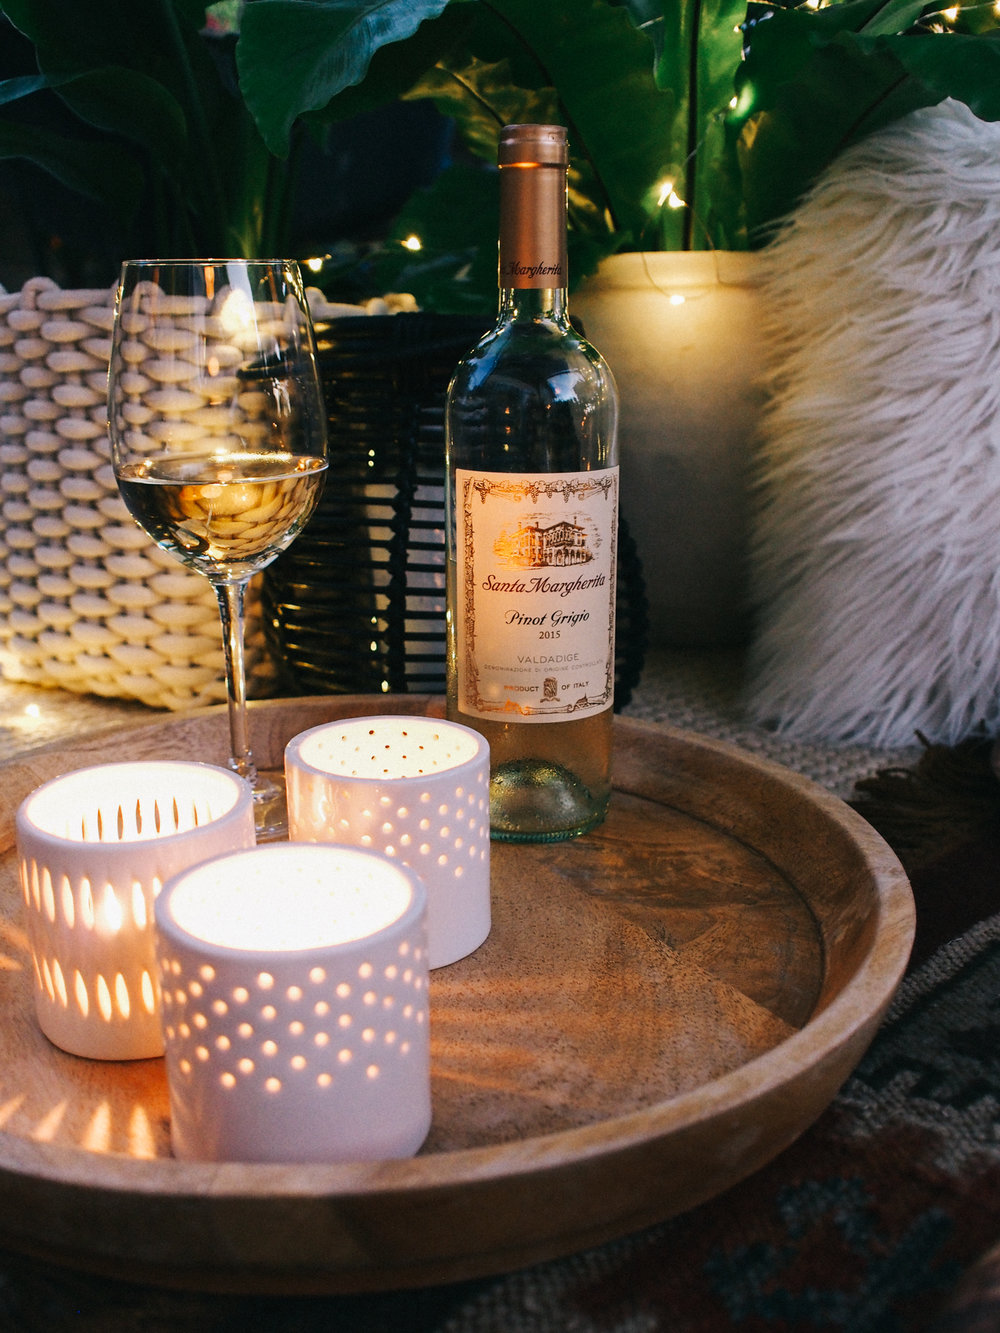 Refreshing+Pinot+Grigio+is+our+fave+for+summer+BBQ's,+more+entertaining+tips+on+the+blog!+|+A+Fabulous+Fete.jpeg